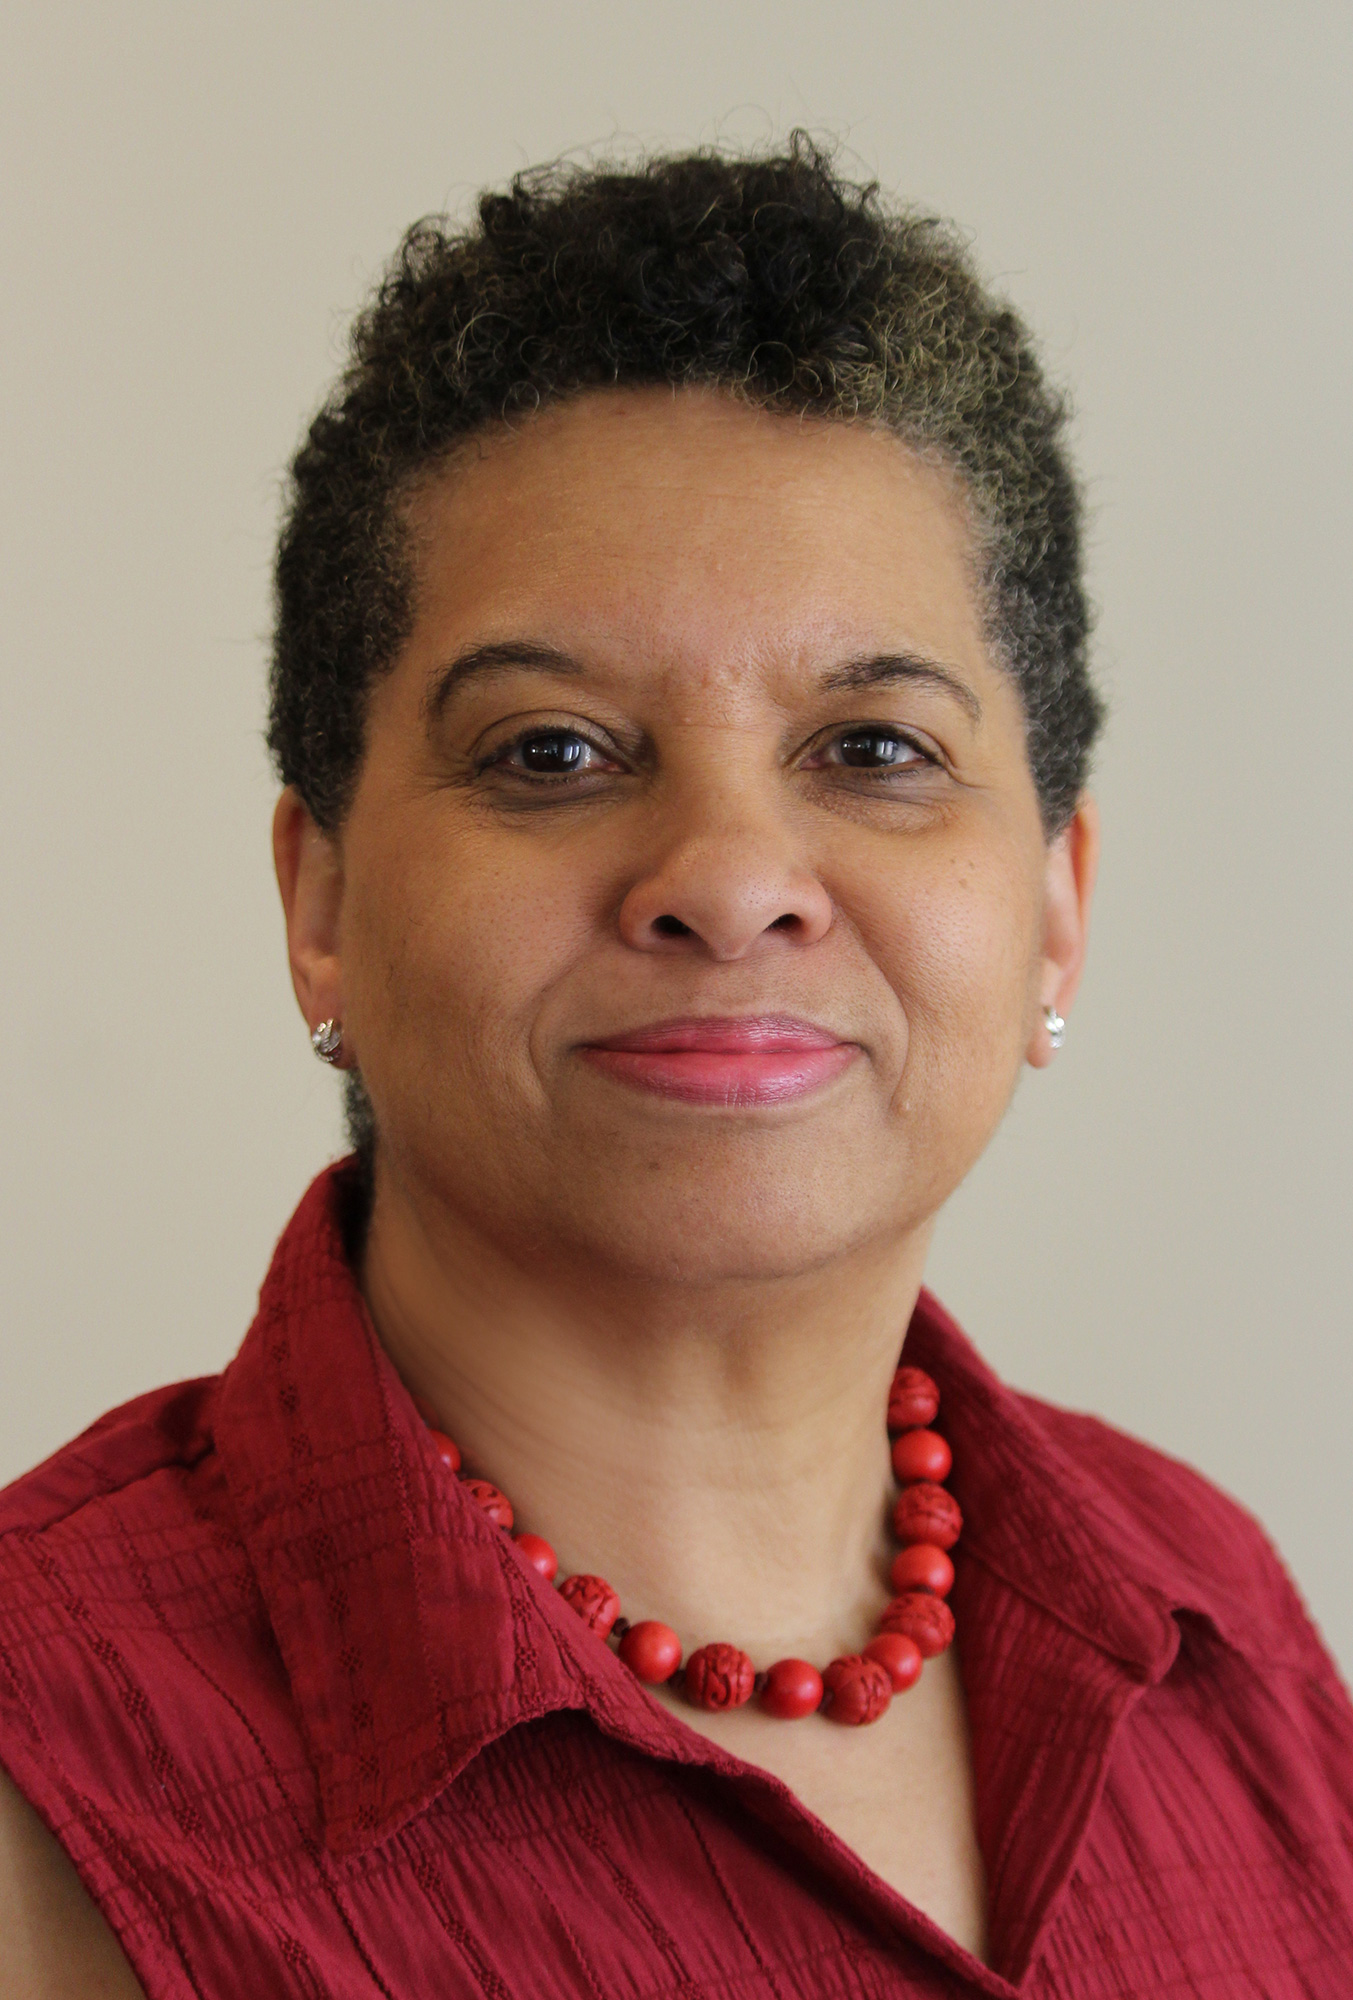 Patricia A. Swann, senior program officer for thriving communities at The New York Community Trust